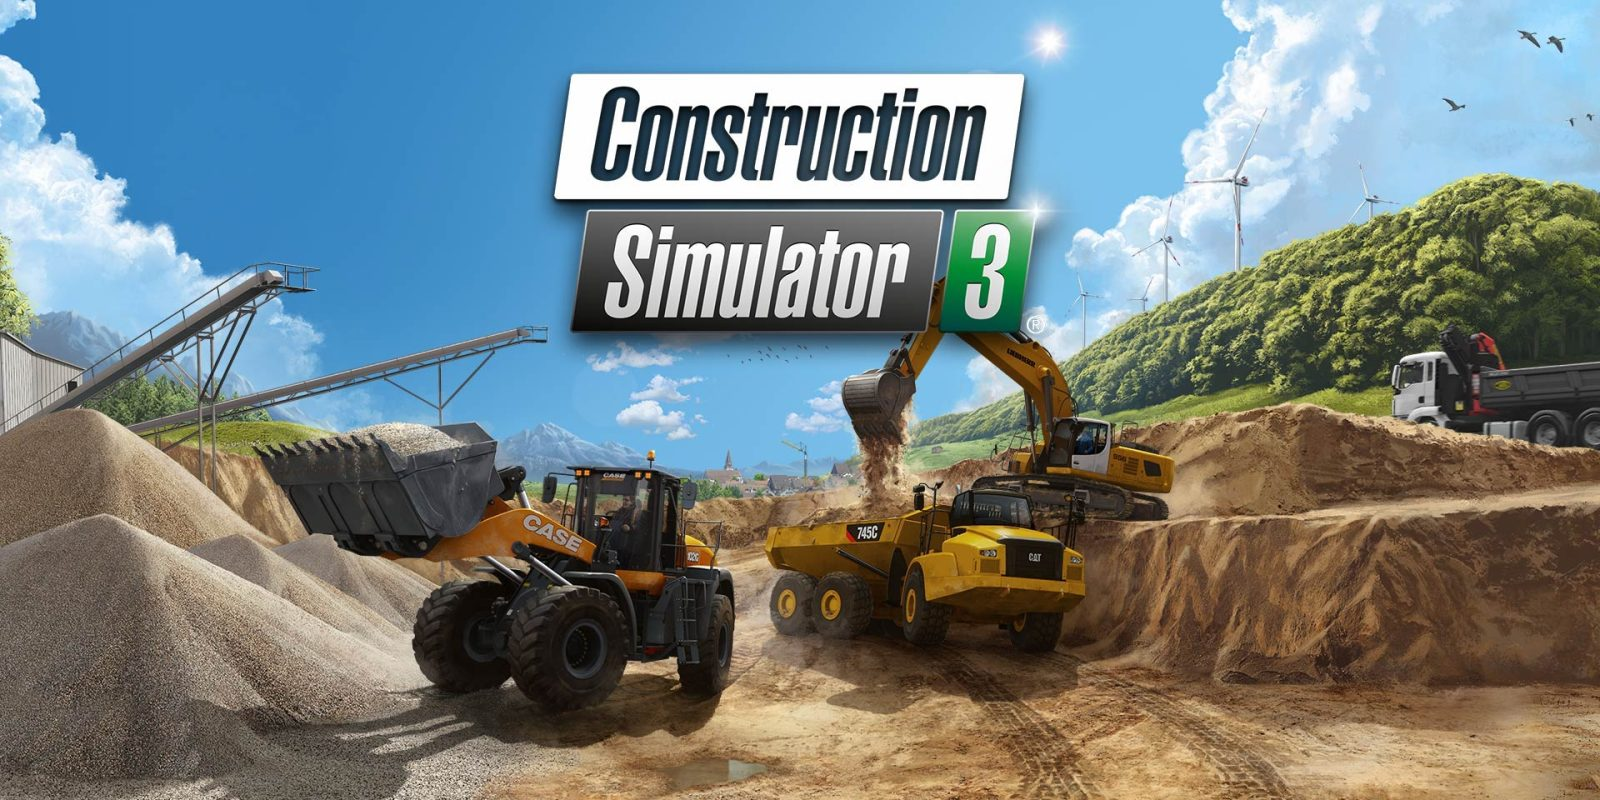 Build an idyllic European town in Construction Sim 3 for iOS, now $2 (50% off)